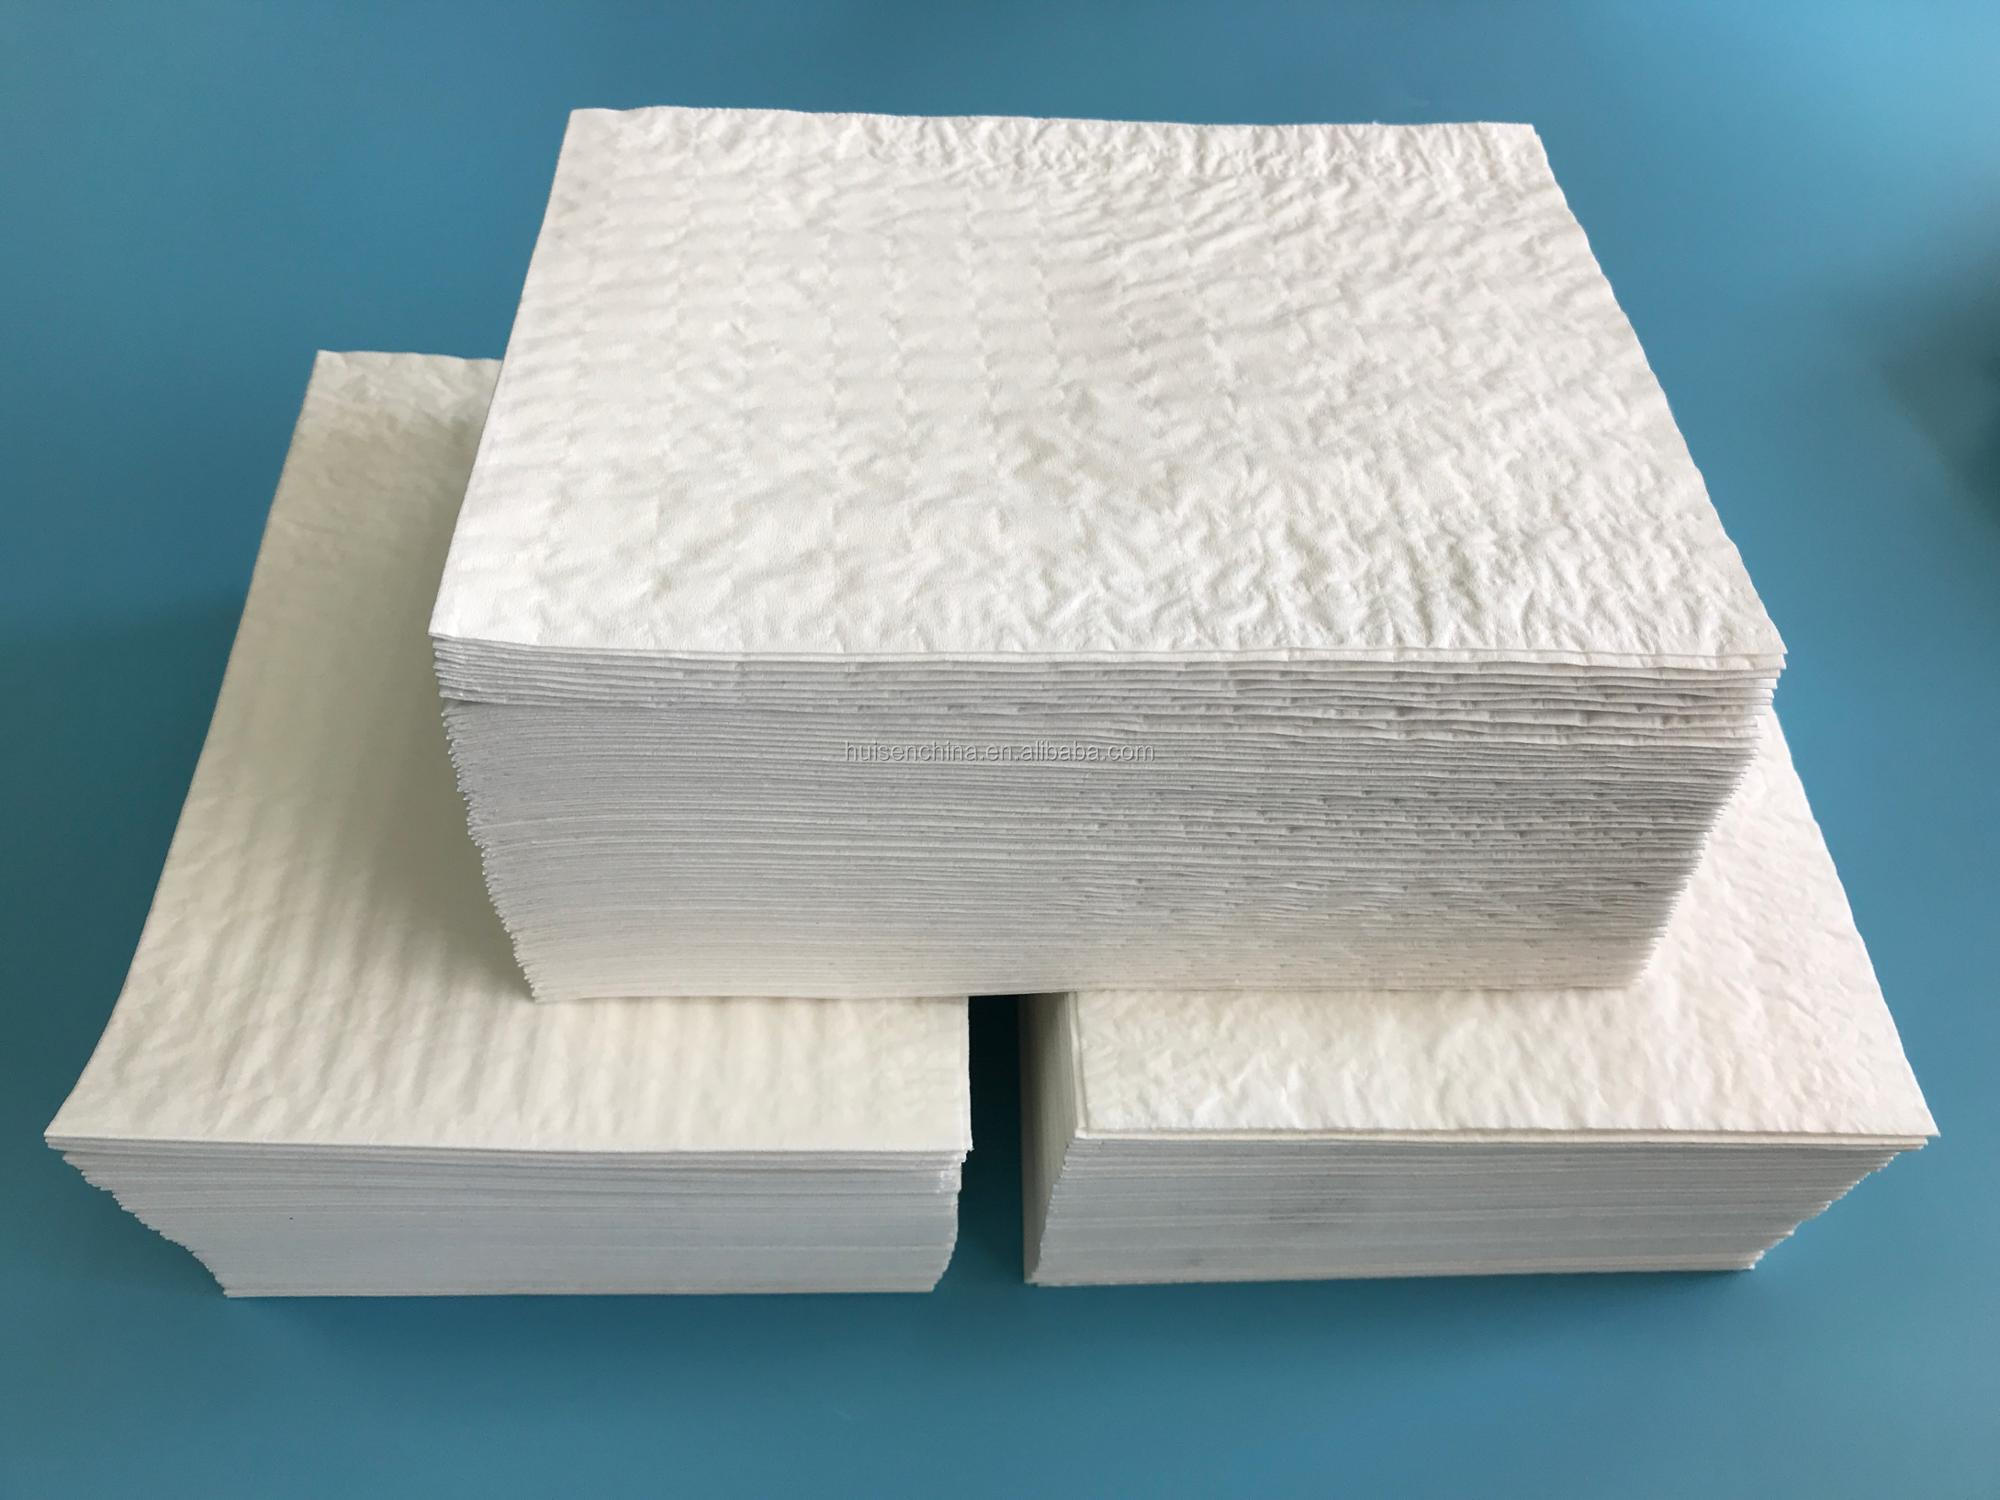 hot selling Disposable surgical scrim paper hand towel for hospital/ clinic 4 ply